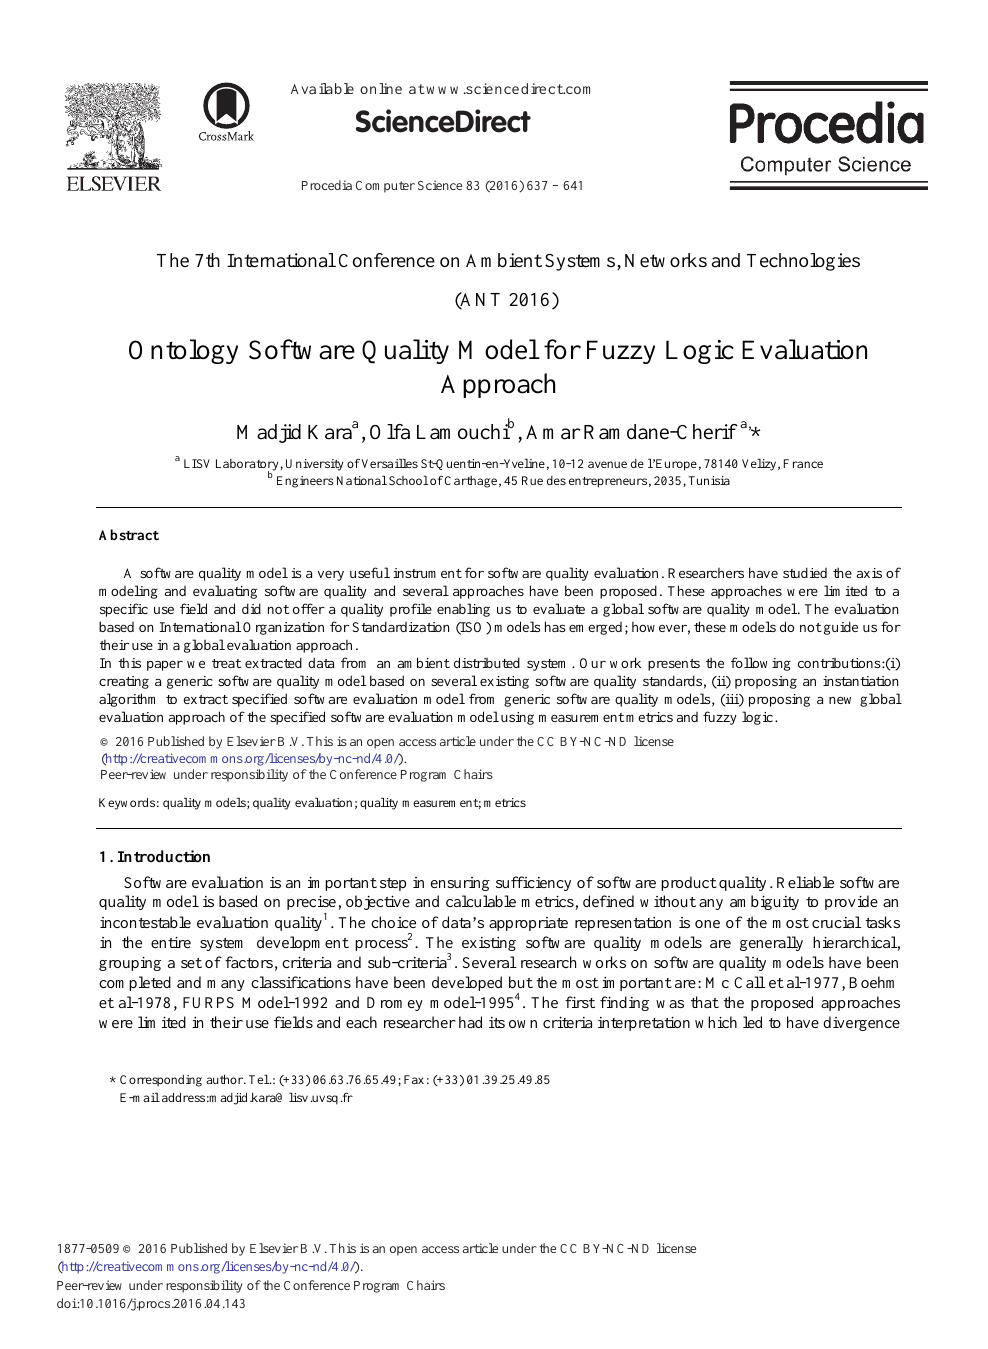 Ontology Software Quality Model for Fuzzy Logic Evaluation